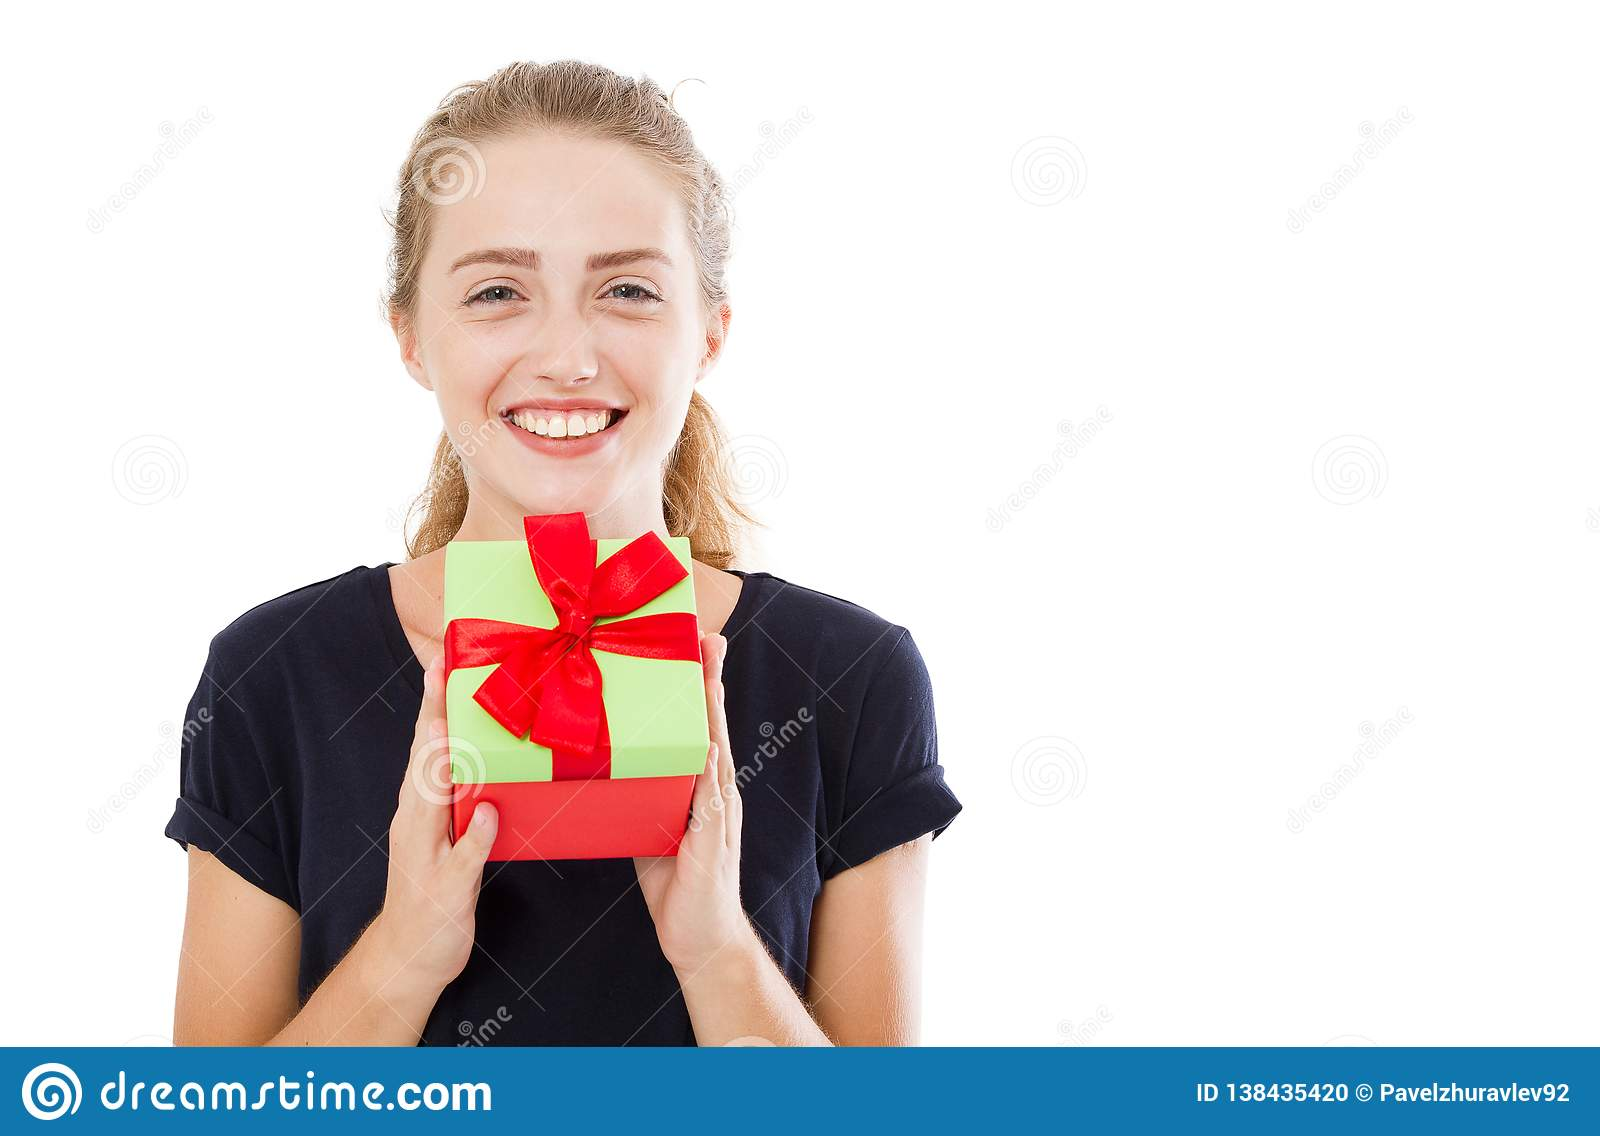 Beautiful young blonde woman holding gift over isolated background with surprise face pointing finger to himself,copy space